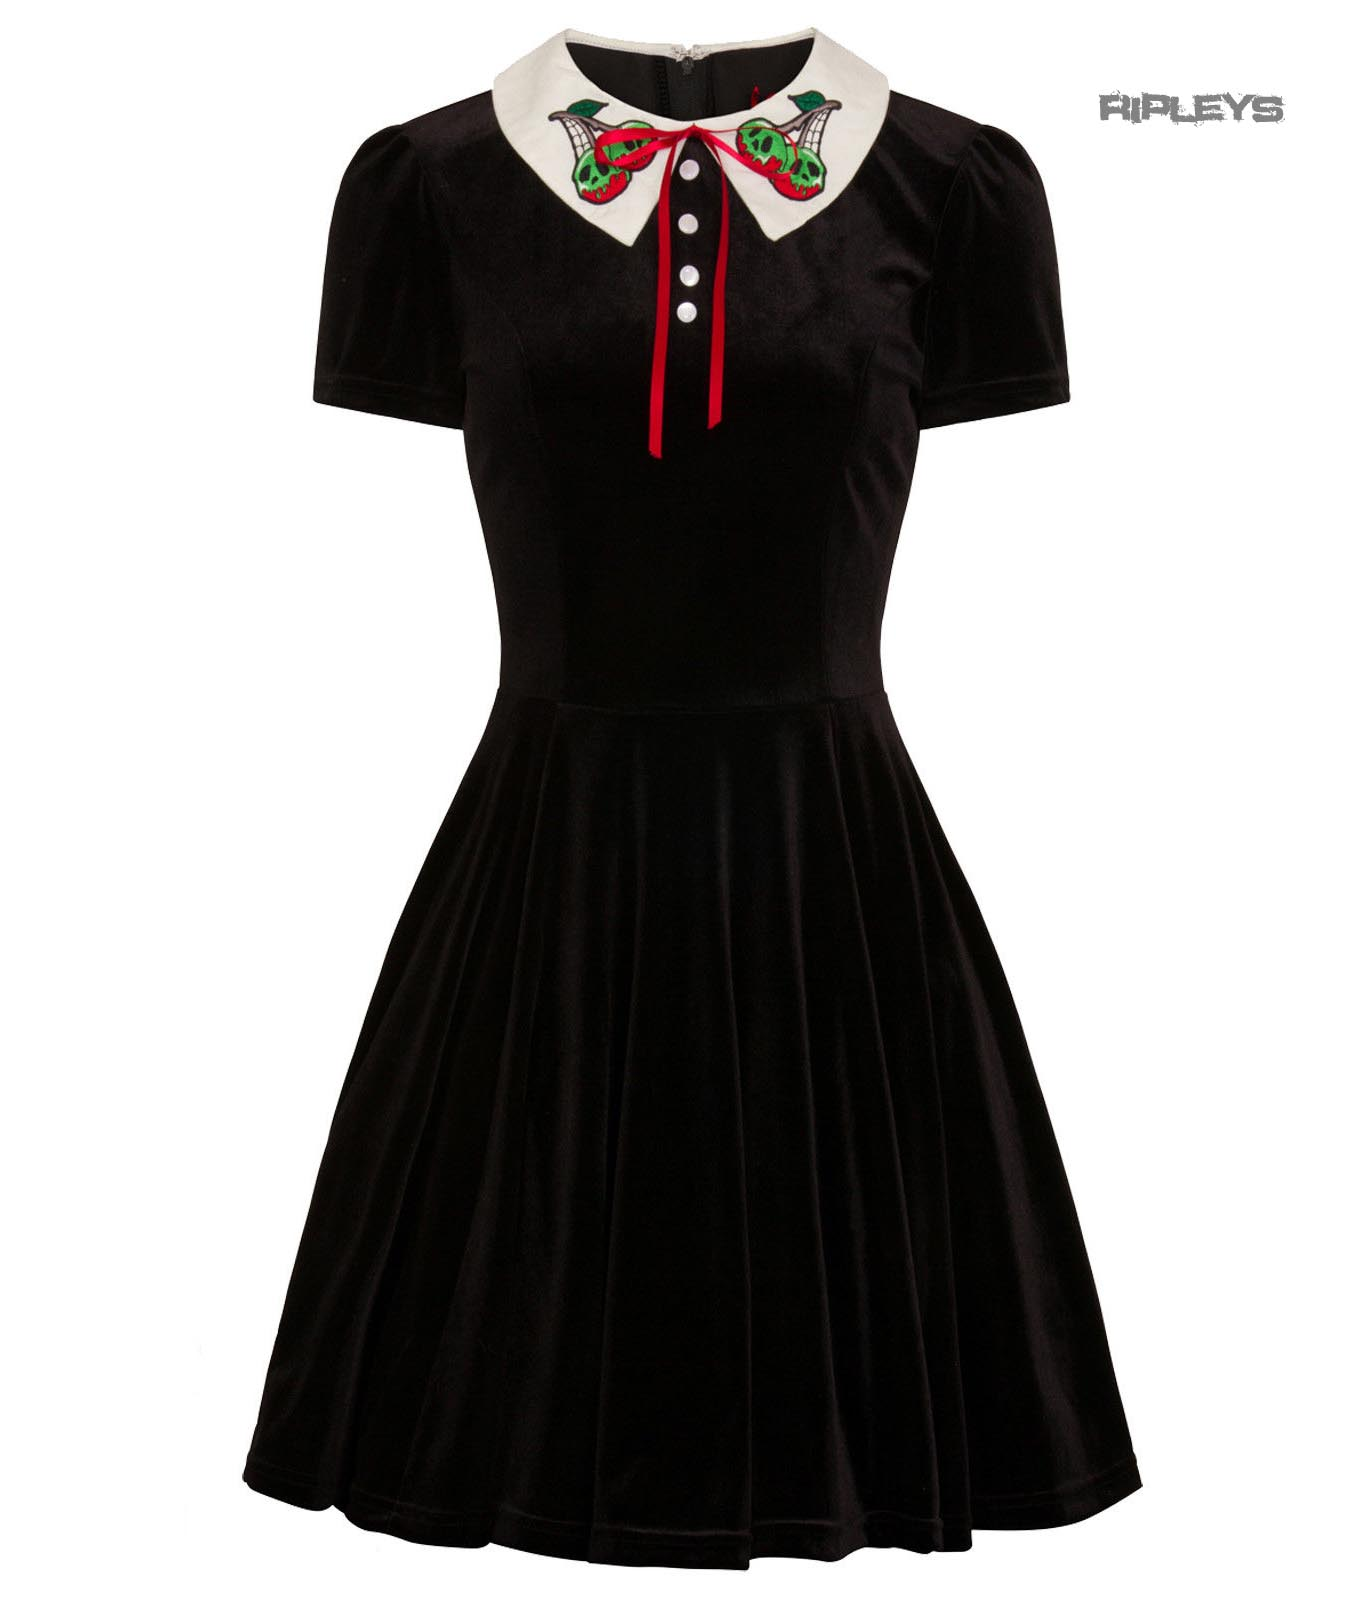 Hell-Bunny-Goth-Mini-Skater-Dress-NIGHTSHADE-Poison-Cherry-Black-Velvet-All-Size thumbnail 2